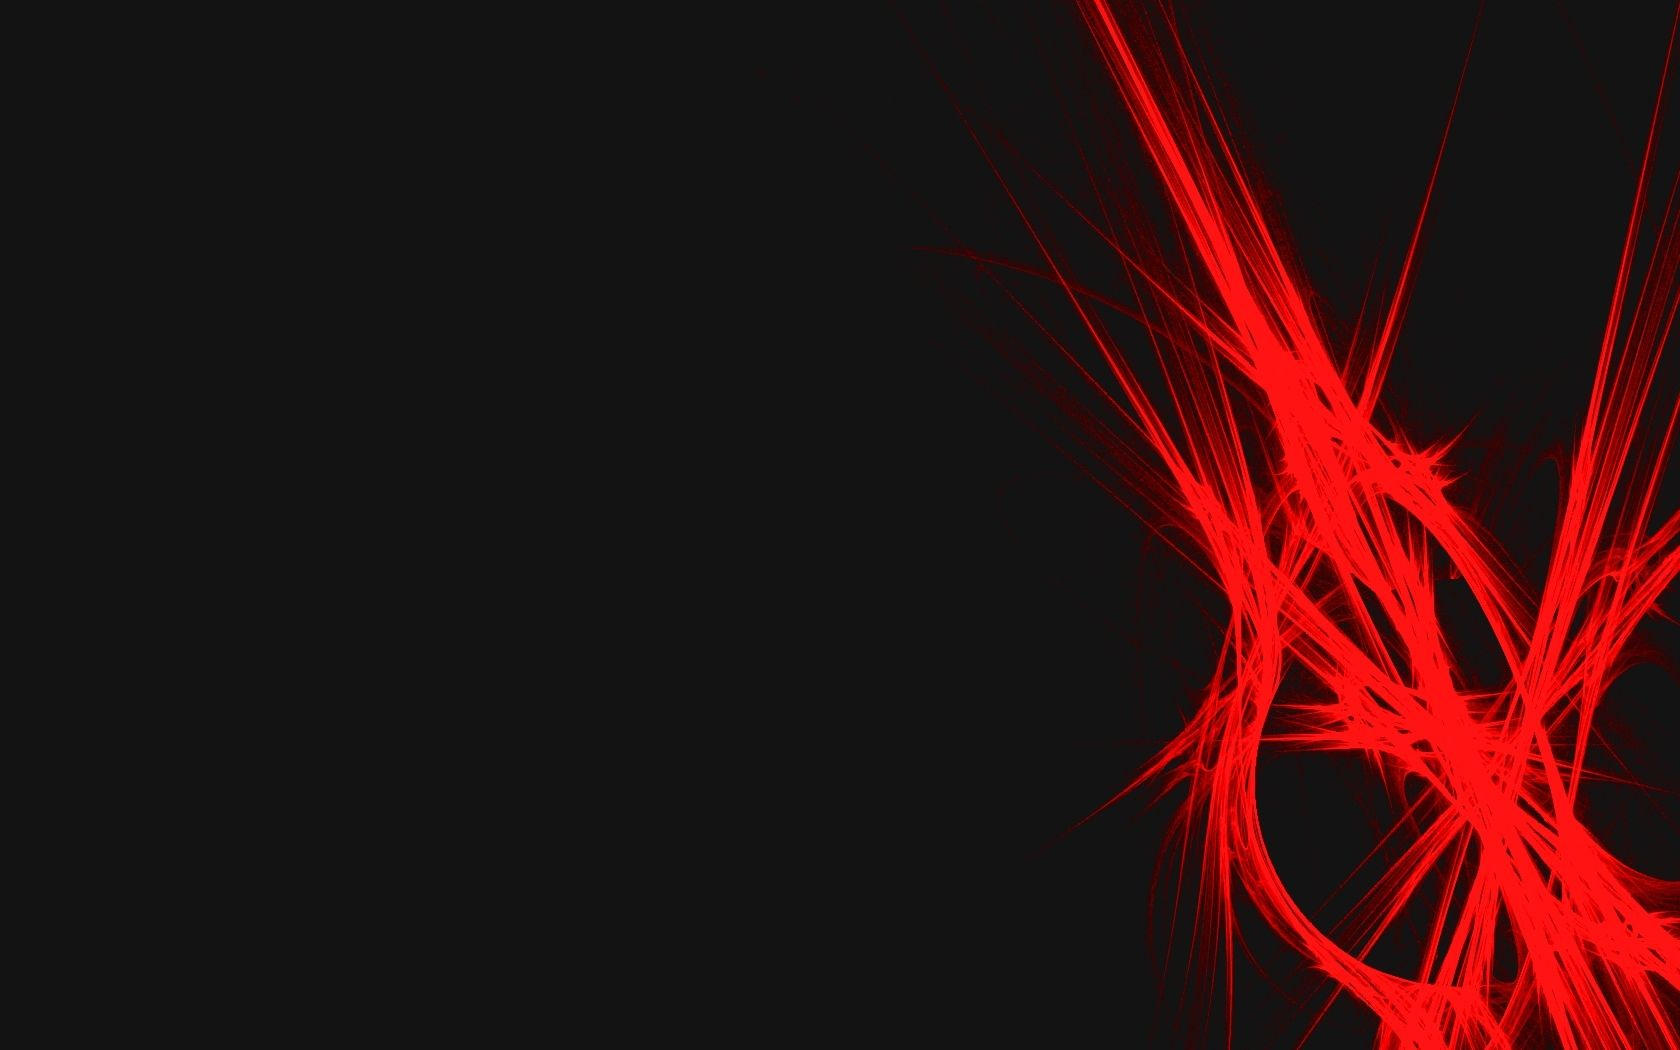 10 Best Awesome Red And Black Background Full Hd 1080p For Pc Background Red And Black Background Black Backgrounds Background